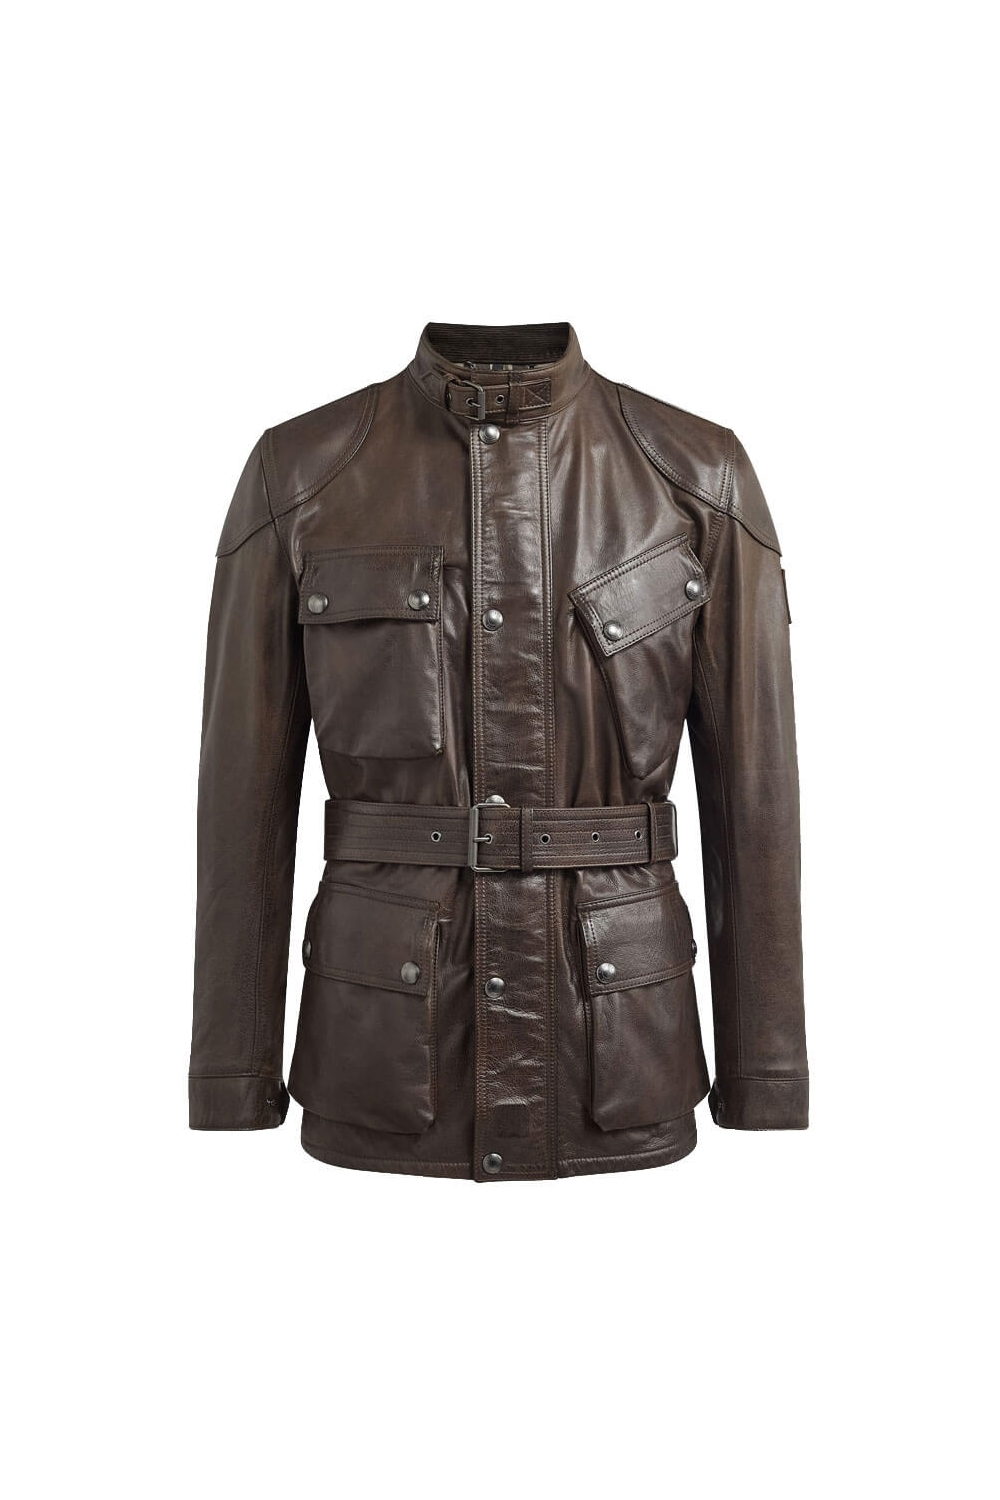 top fashion retail prices first rate Panther Leather Jacket Black Brown